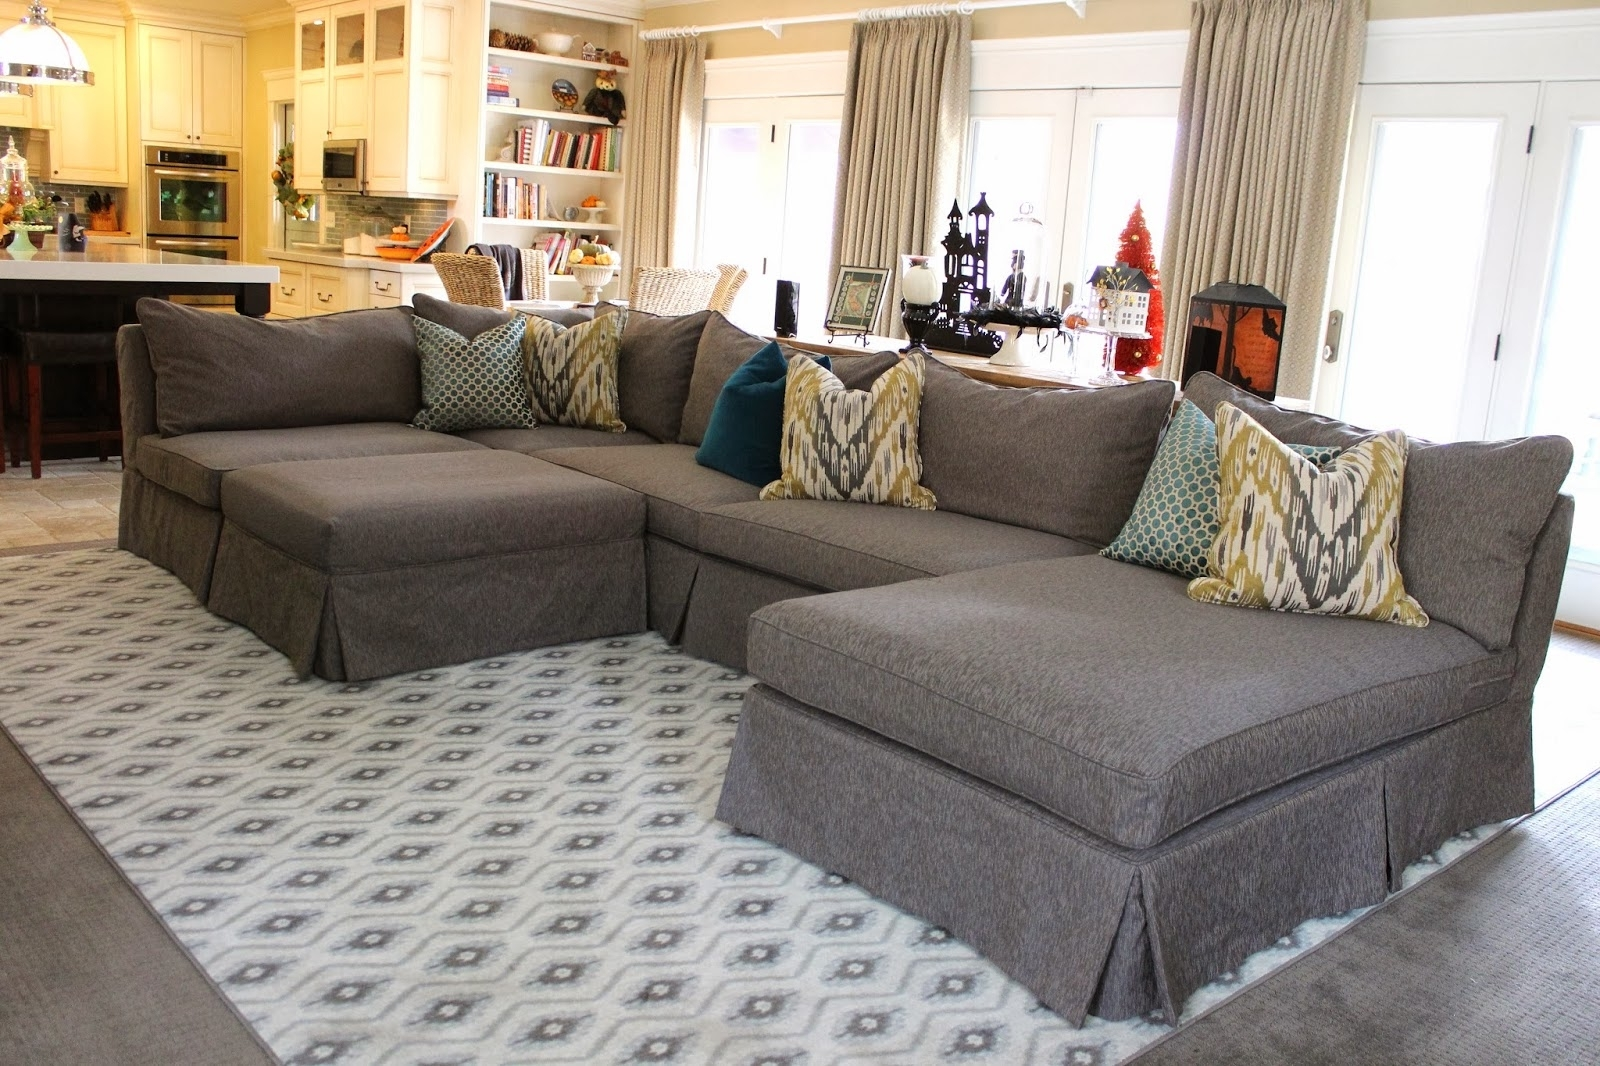 Furniture : Sectional Sofa Joining Hardware Corner Couch House And With Regard To Most Popular Gta Sectional Sofas (View 4 of 15)